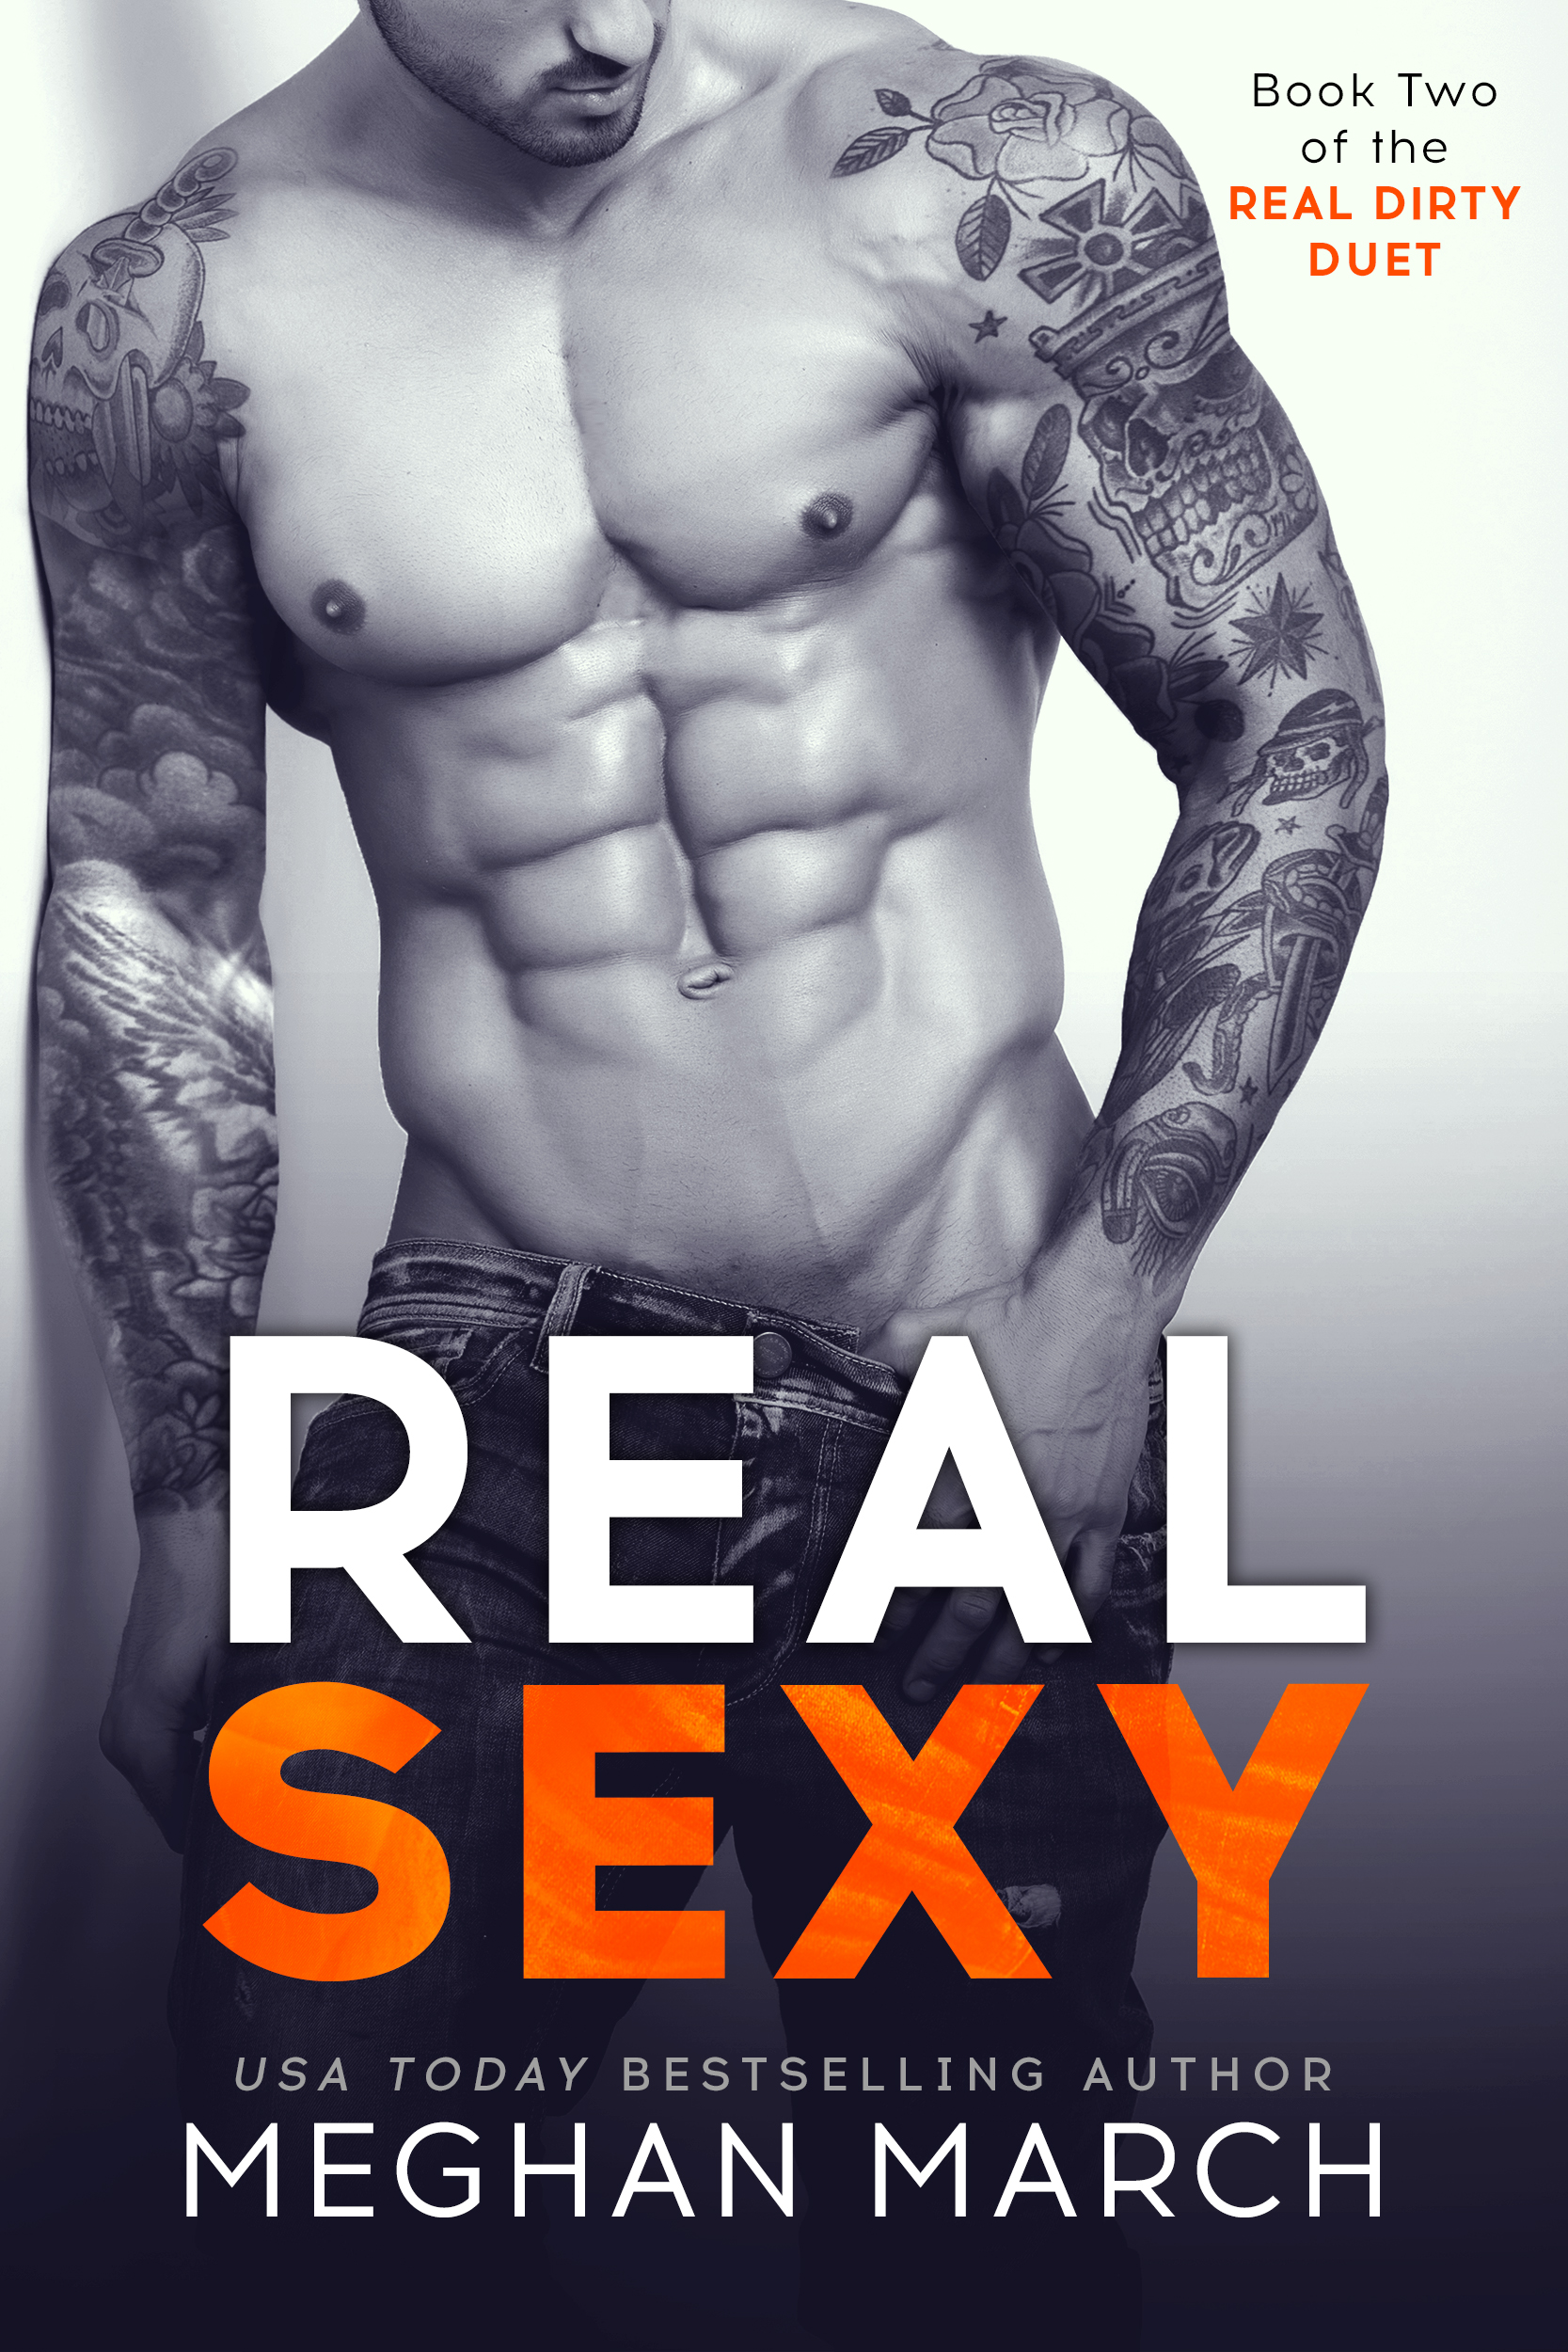 REAL DIRTY ~Available Now  Real Dirty Duet Book 1 ~By Meghan March  I have everything a guy could want—a new single burning up the charts, more money than a simple country boy could spend, and a woman I'm planning to marry.  Until she doesn't show up for my proposal.  The life I thought was so perfect, isn't.  The guy who thought he had everything, doesn't.  I've got my heart on lockdown, but life sends me straight into the path of a mouthy bartender who puts me in my place.  Now the only place I want to put her is under me.  I thought I was done with love, but maybe I'm just getting started.   Amazon  ~ iBooks  ~ B&N  ~ Kobo  ~ Google Play  ~ Goodreads